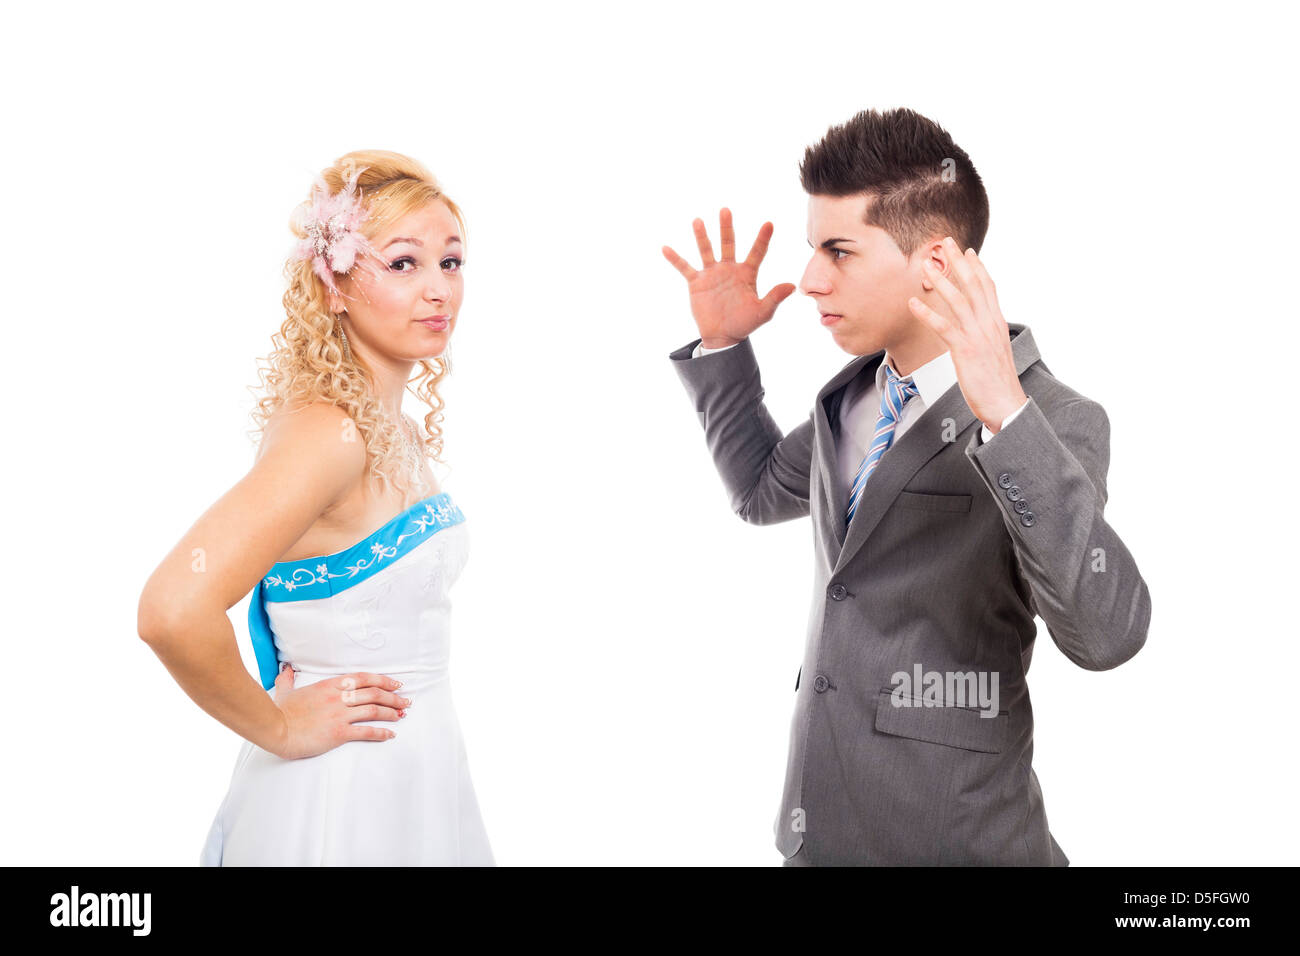 Unhappy bride and angry groom arguing, isolated on white background - Stock Image